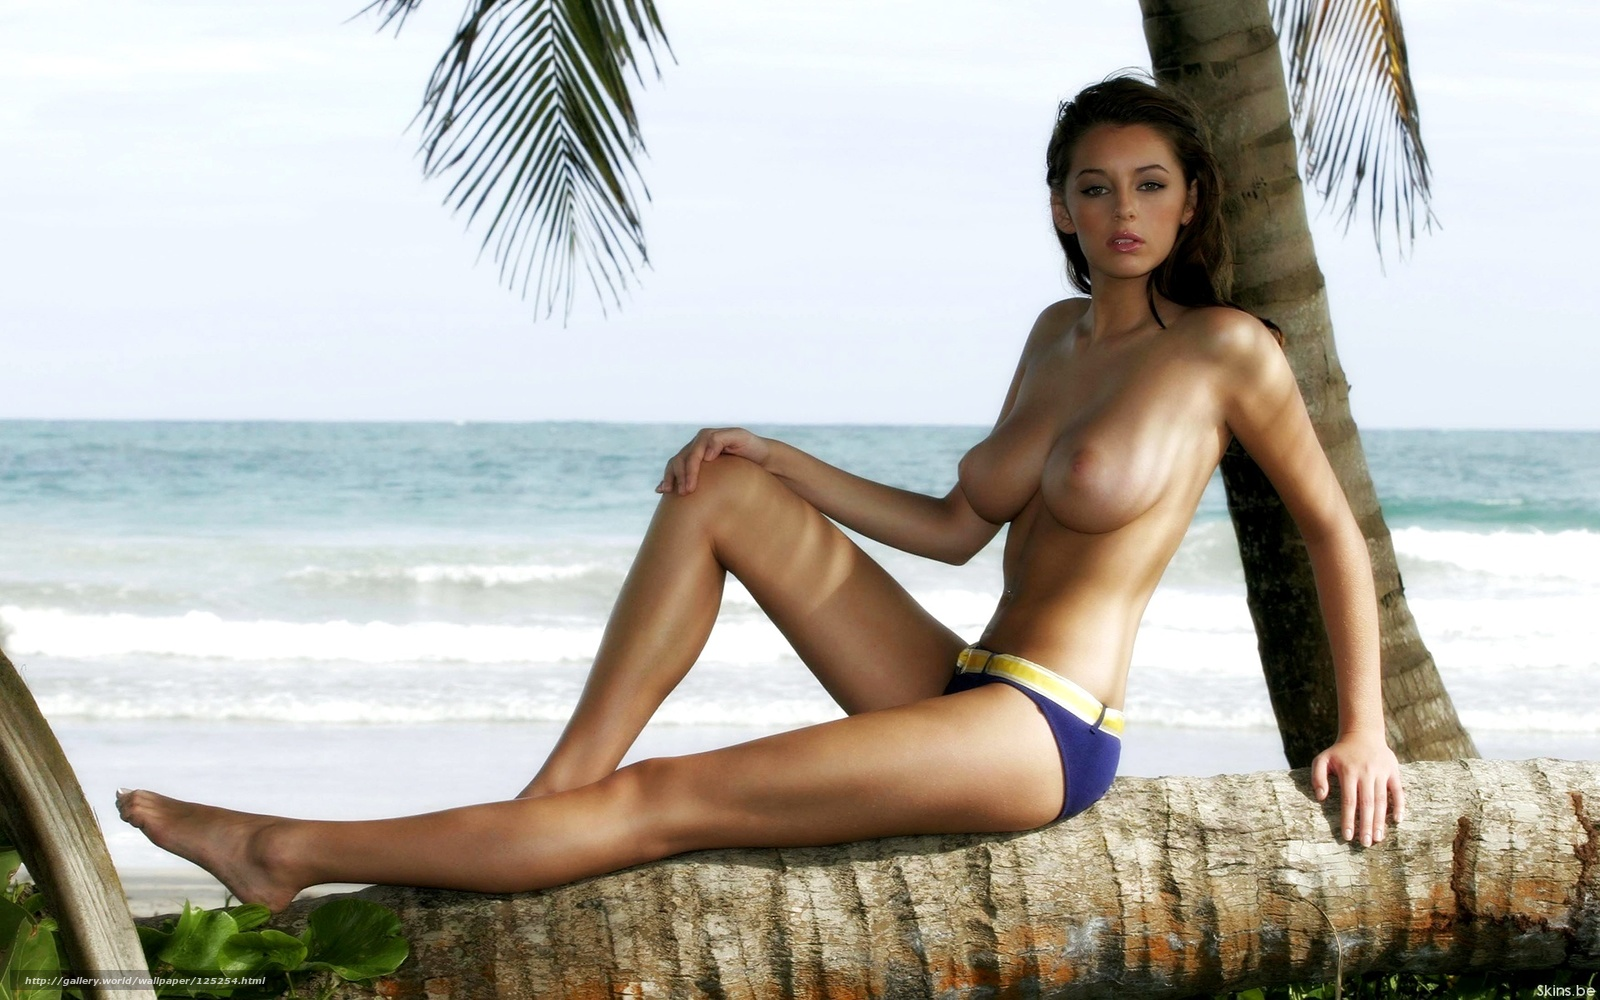 Eng ful nud girls image hentia boob